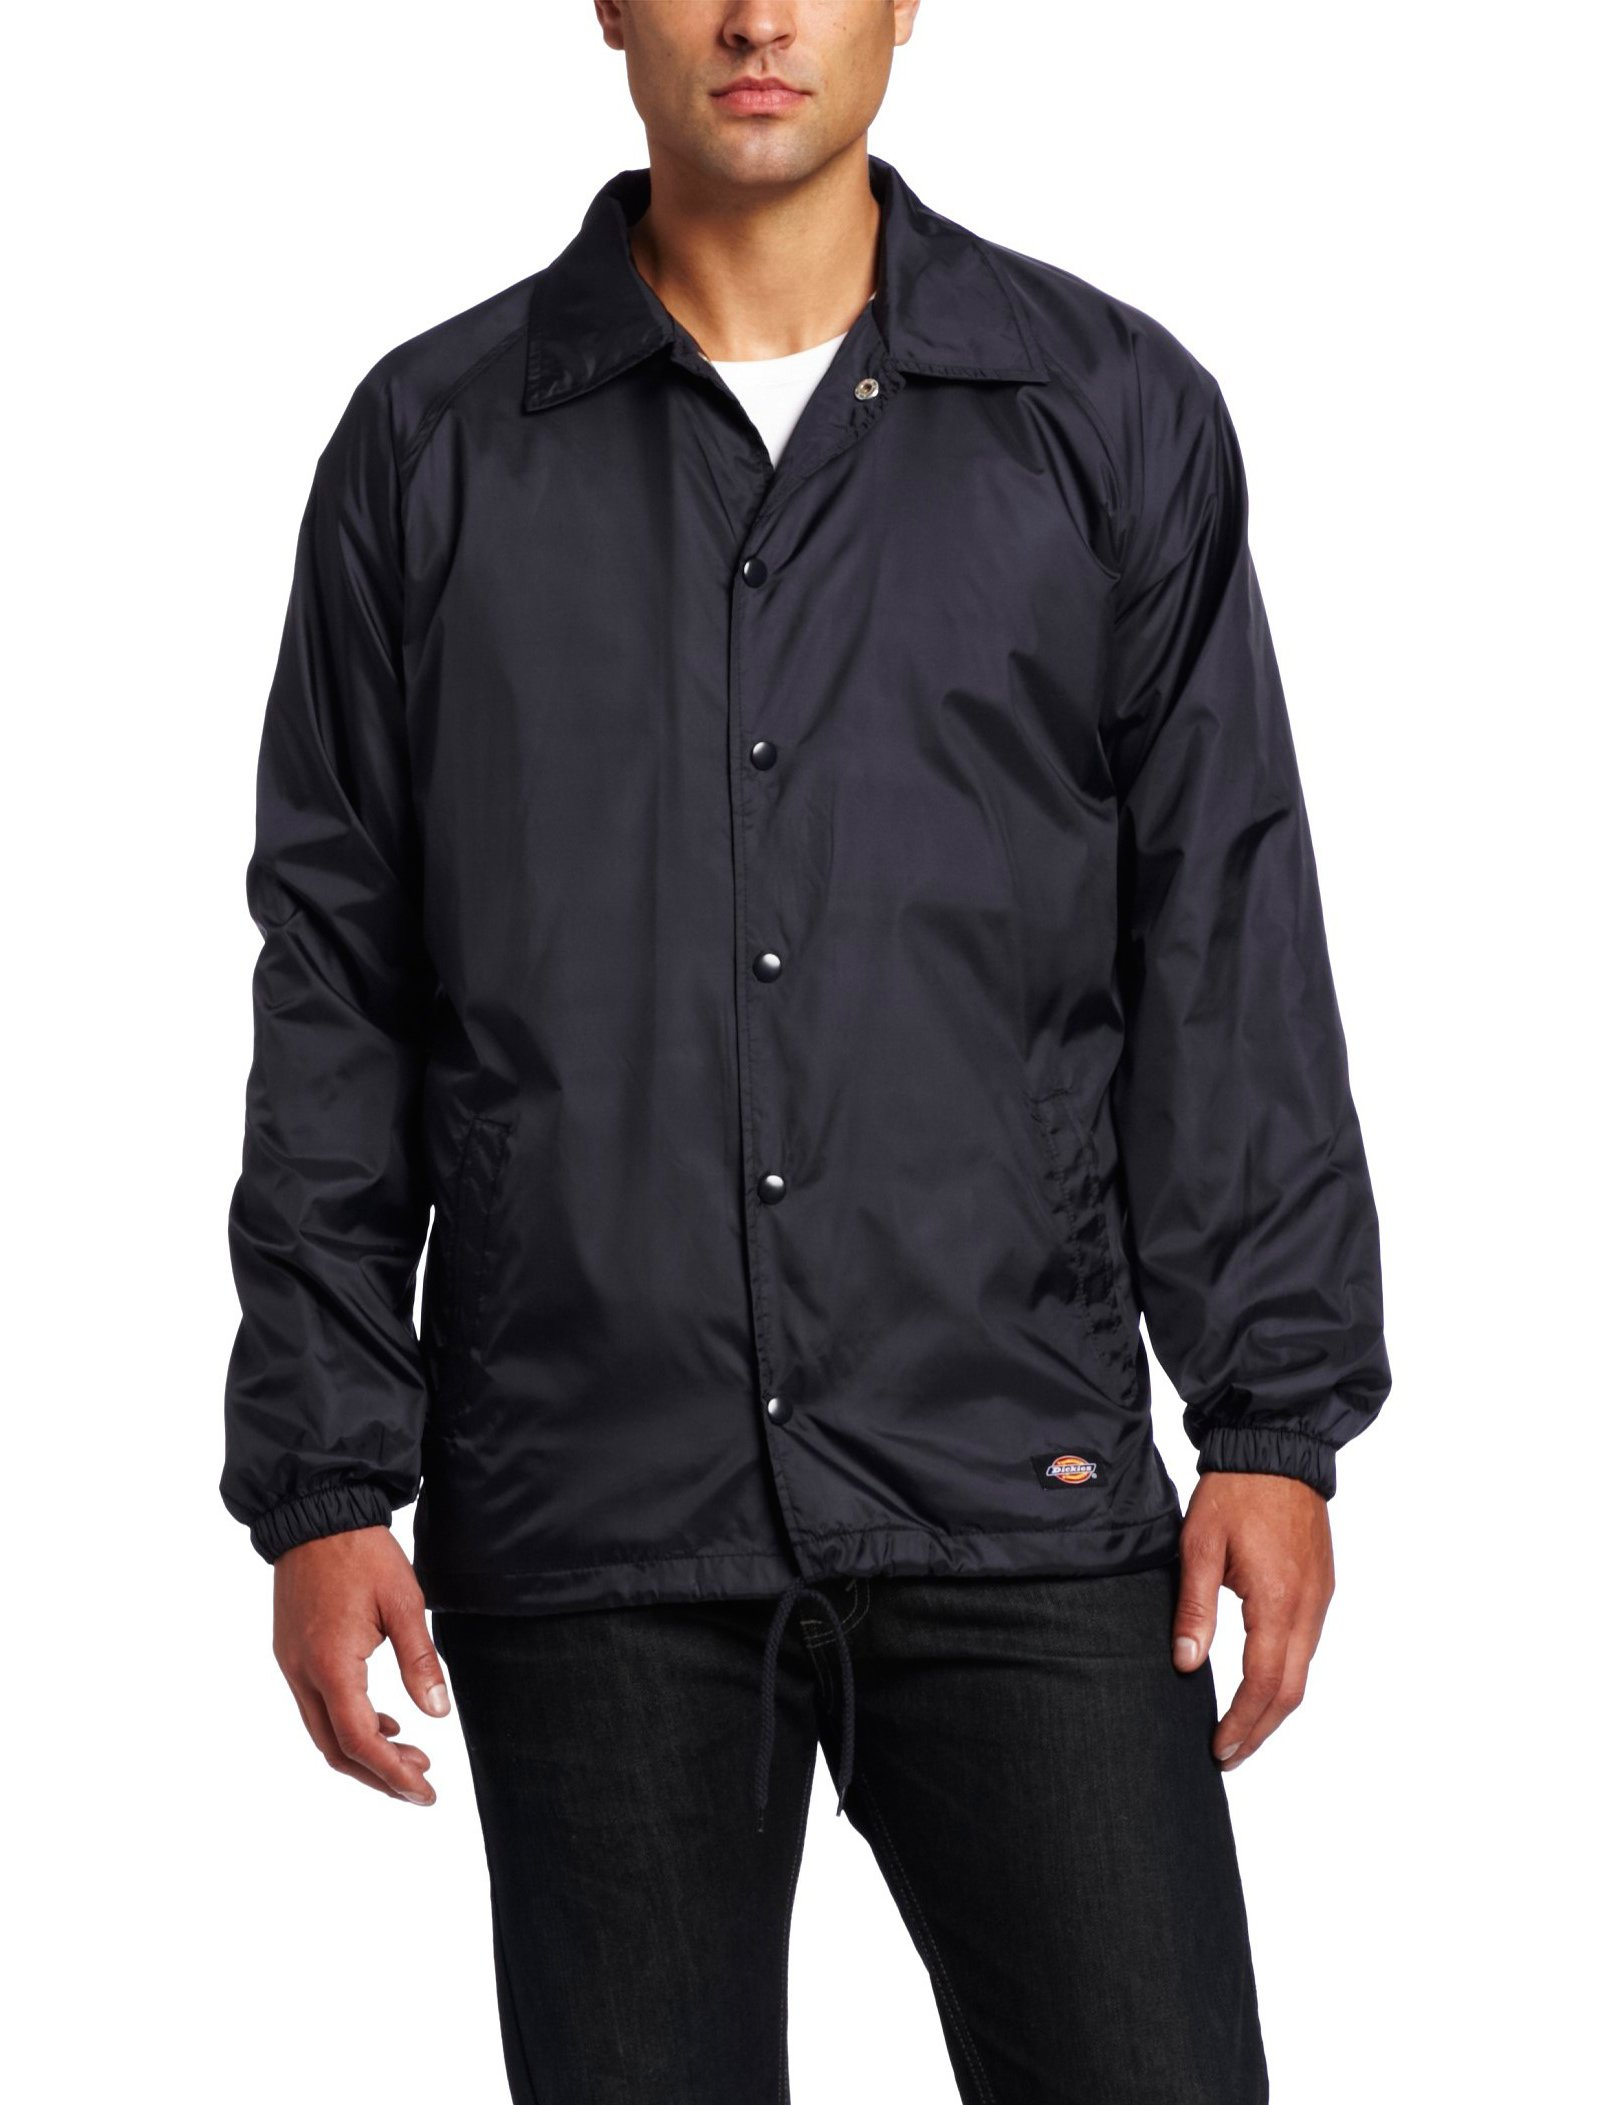 Dickies Men's Snap Front Nylon Jacket, Dark Navy, Small by Dickies